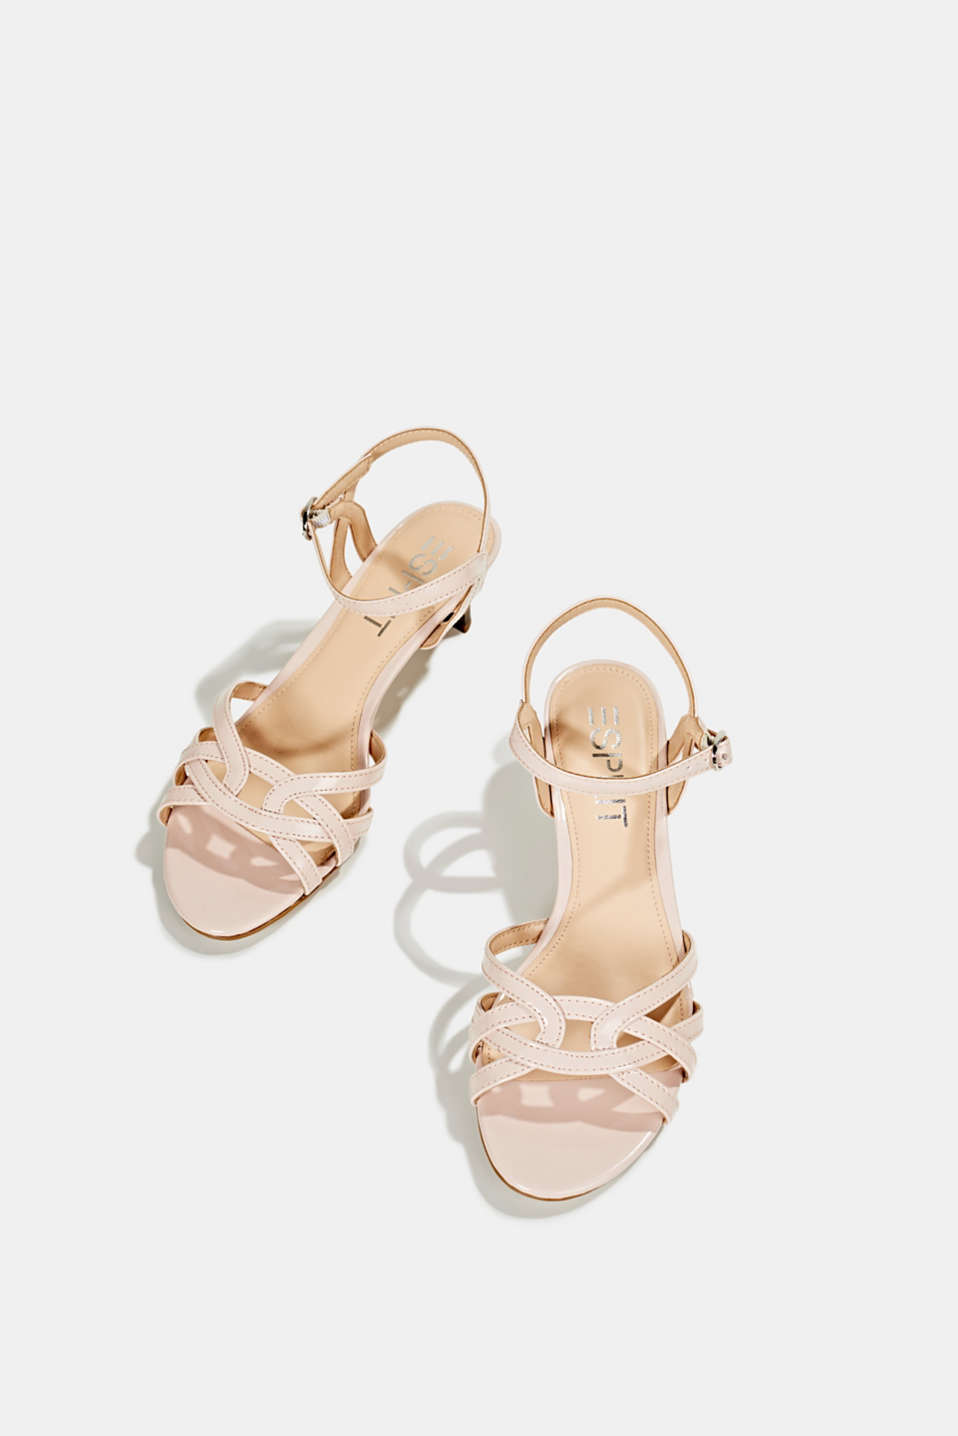 Sandals with straps in a braided look, NUDE, detail image number 1